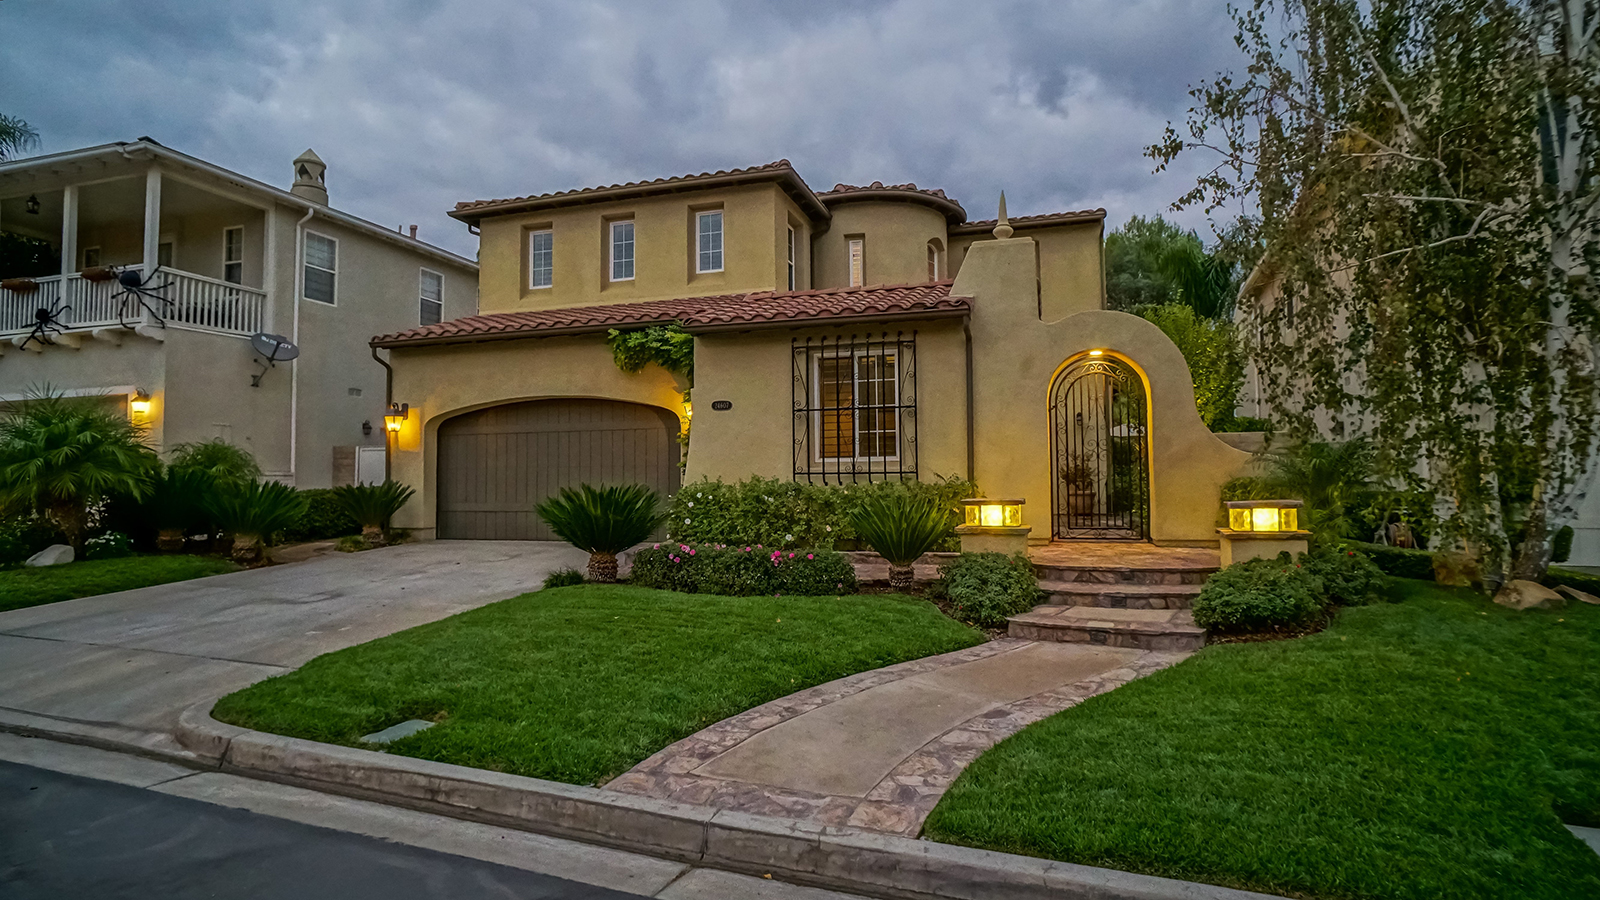 Single Family Home for Sale at 24607 GARLAND Drive 24607 GARLAND Drive Valencia, California,91355 United States